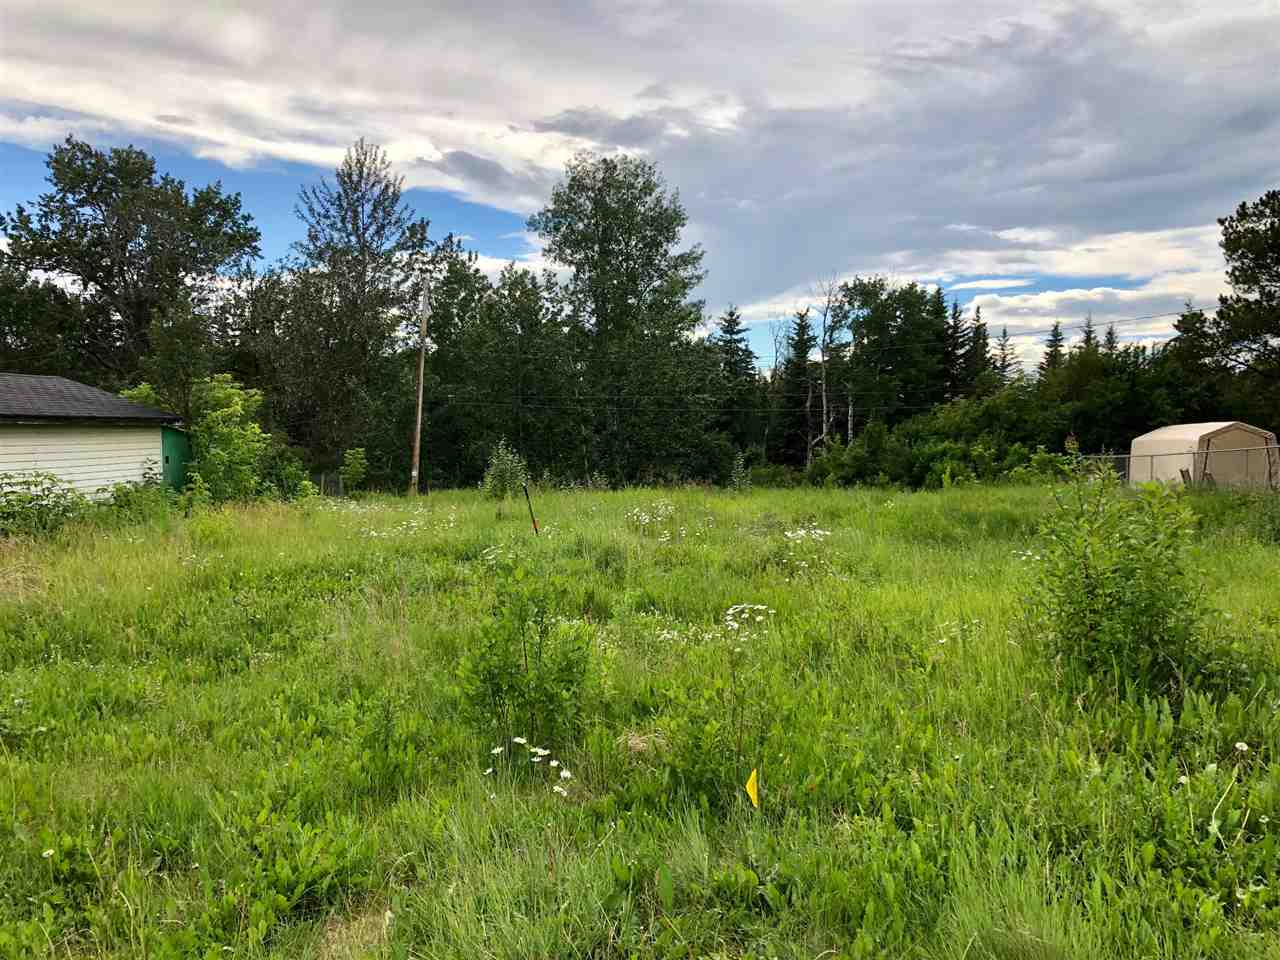 1.5 LOTS FOR SALE IN ATHABASCA. GREAT INVESTMENT FOR builders or real estate developers! This large vacant lot is a great location on a quiet street backing treed land and zoned to build for a multifamily! Located on the east side of town with a close walk to all amenities! Why buy used when you can build your new dream home or investment!